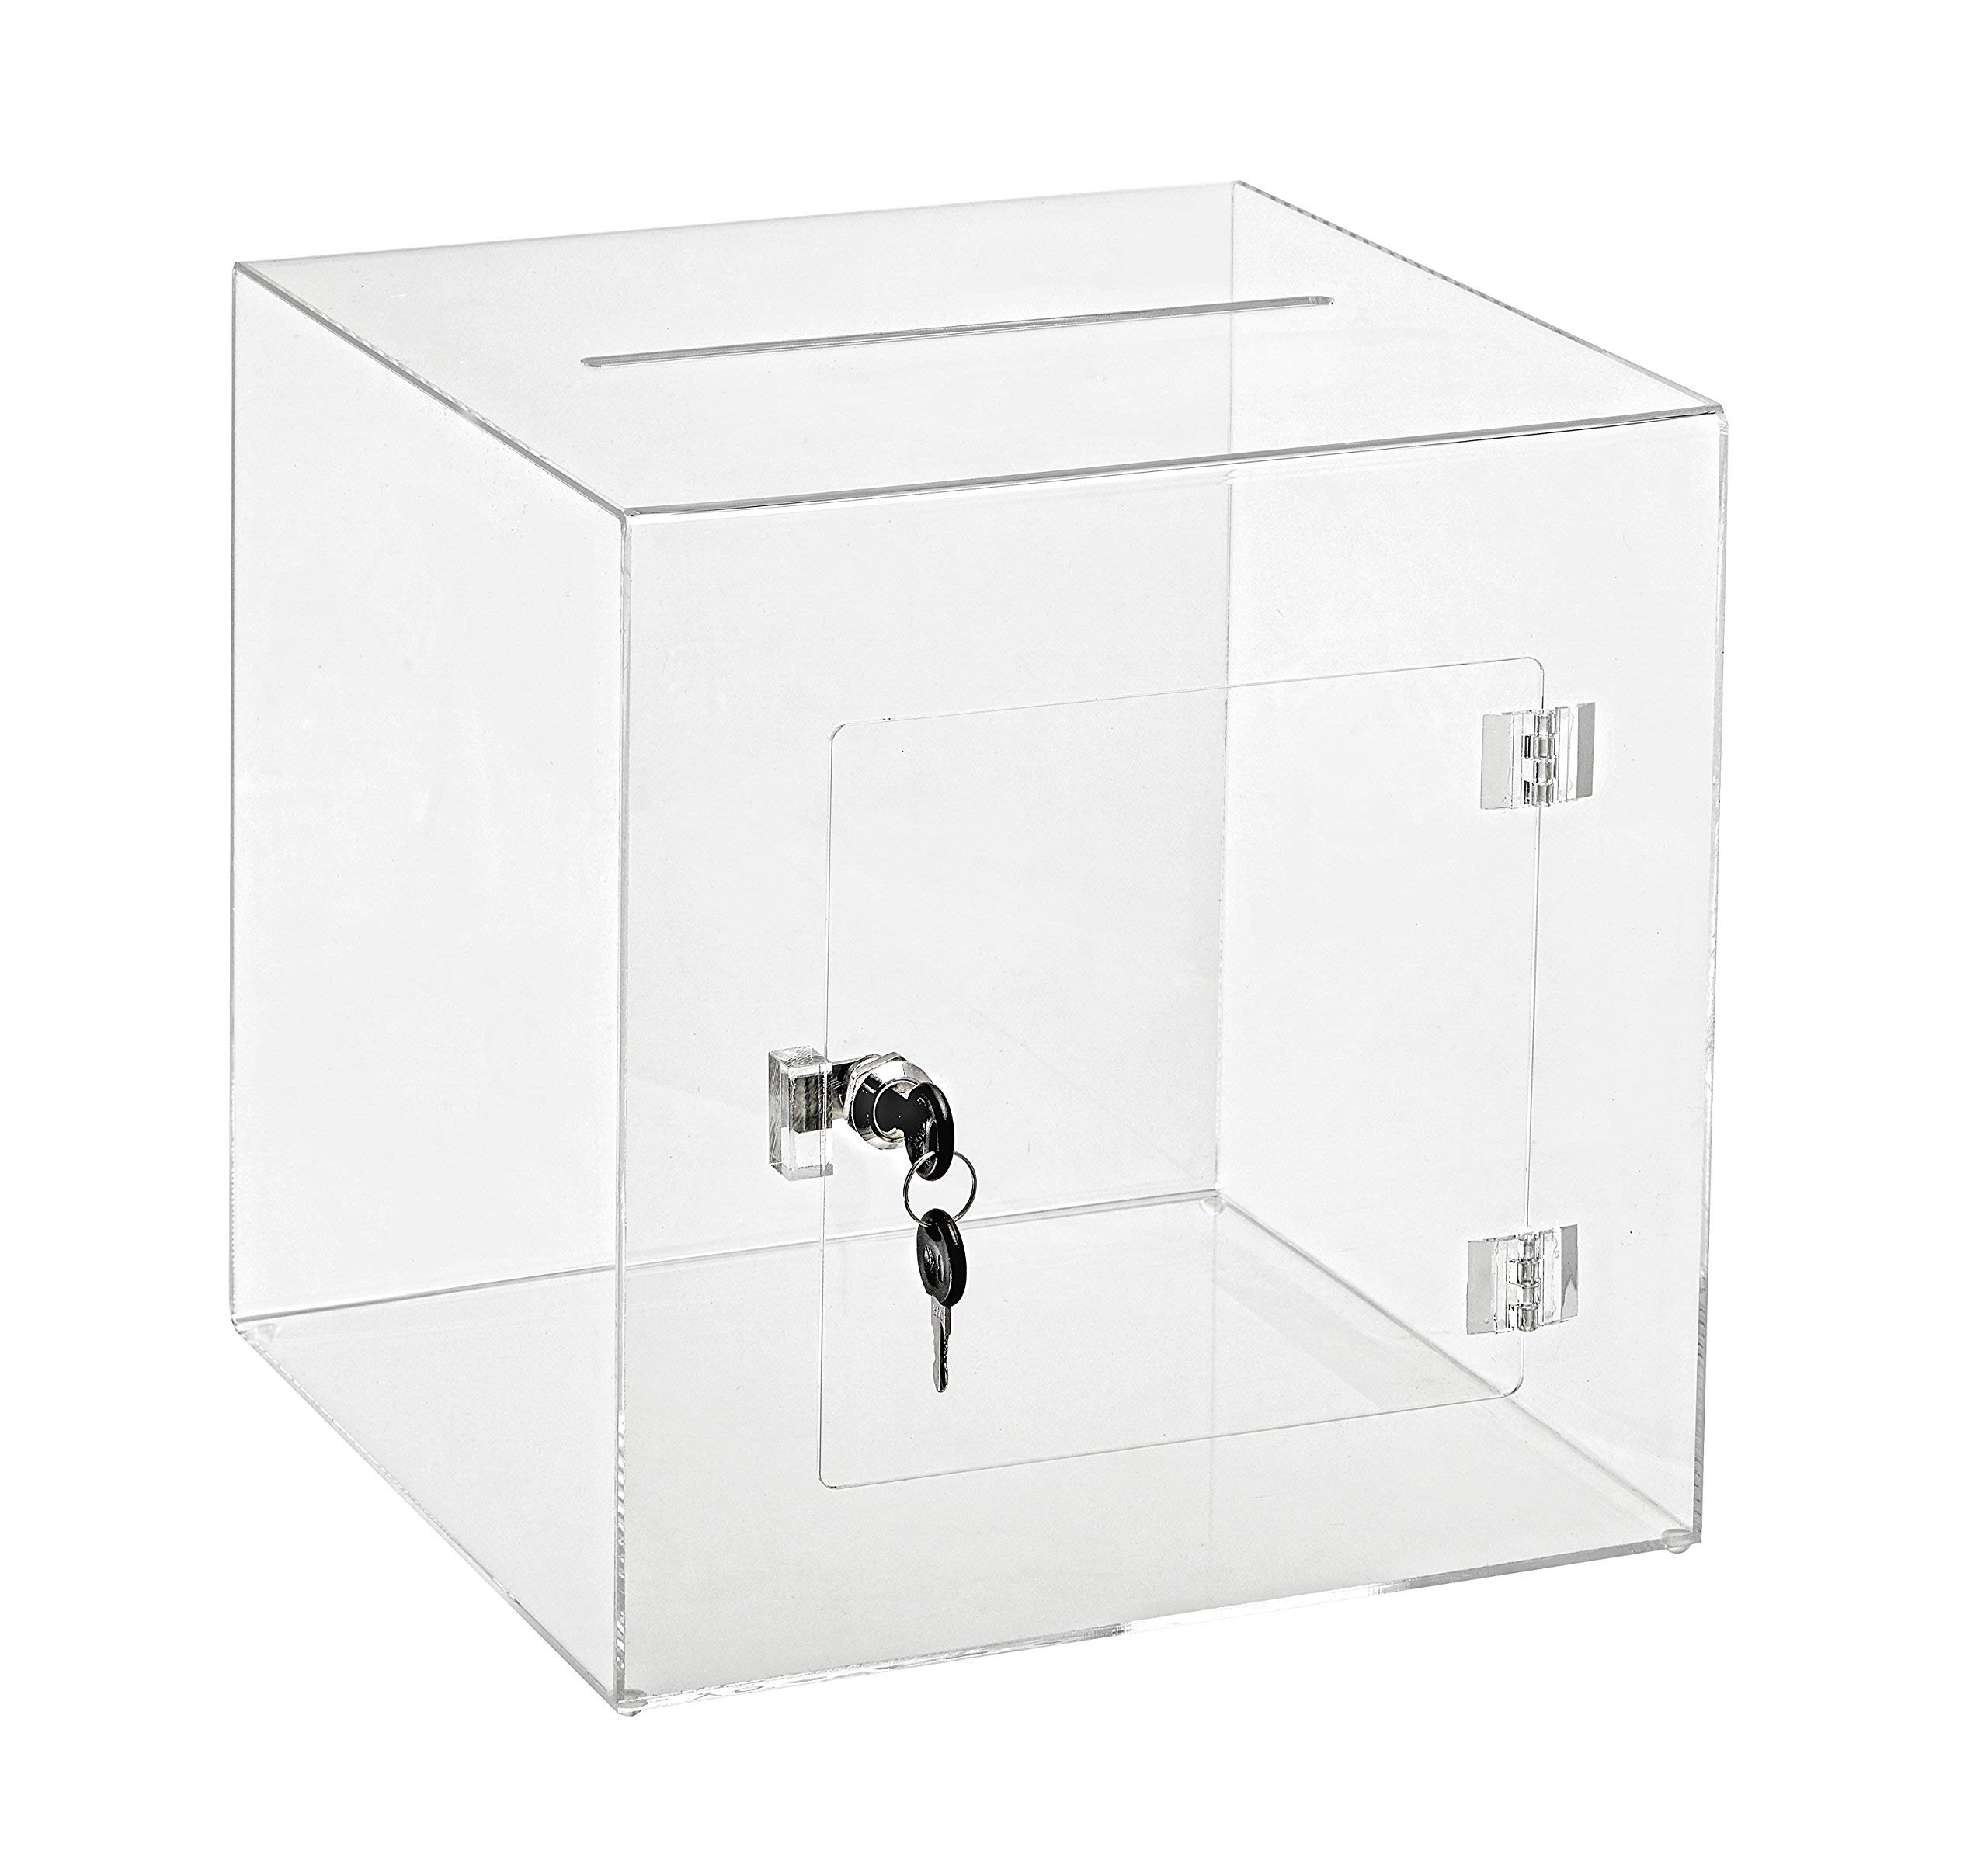 AdirOffice 12'' x 12'' Acrylic Ballot Box Donation Box with Easy Open Rear Door - Durable Acrylic Box with Lock - Ideal for Voting, Charity & Suggestion Collection - Clear by AdirOffice